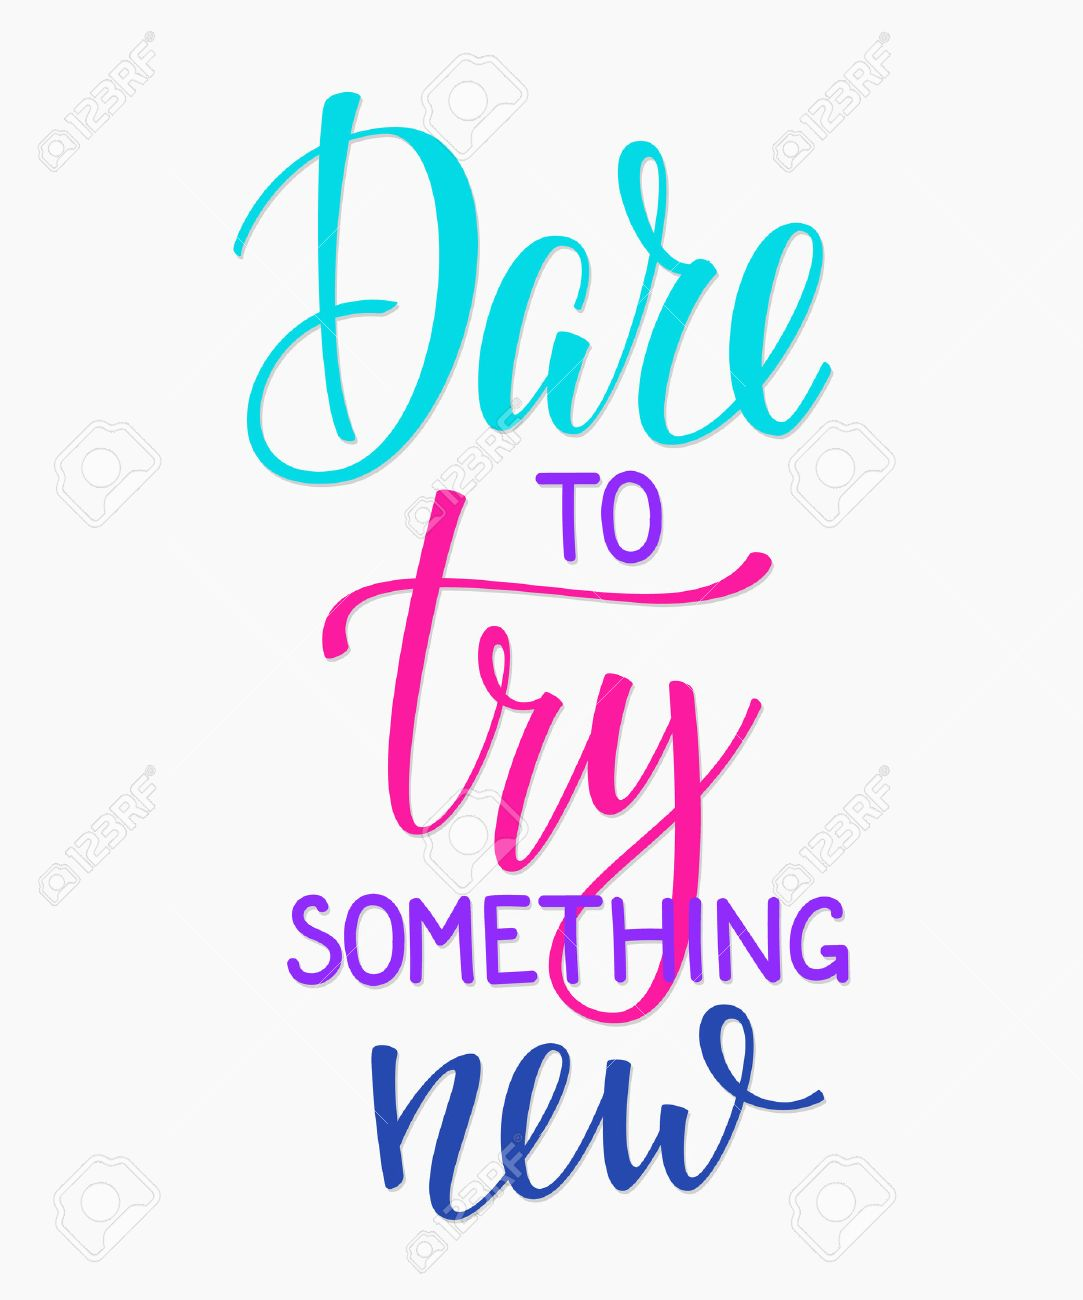 Dare To Try Something New Quote Lettering Calligraphy Inspiration Graphic Design Typography Element Hand